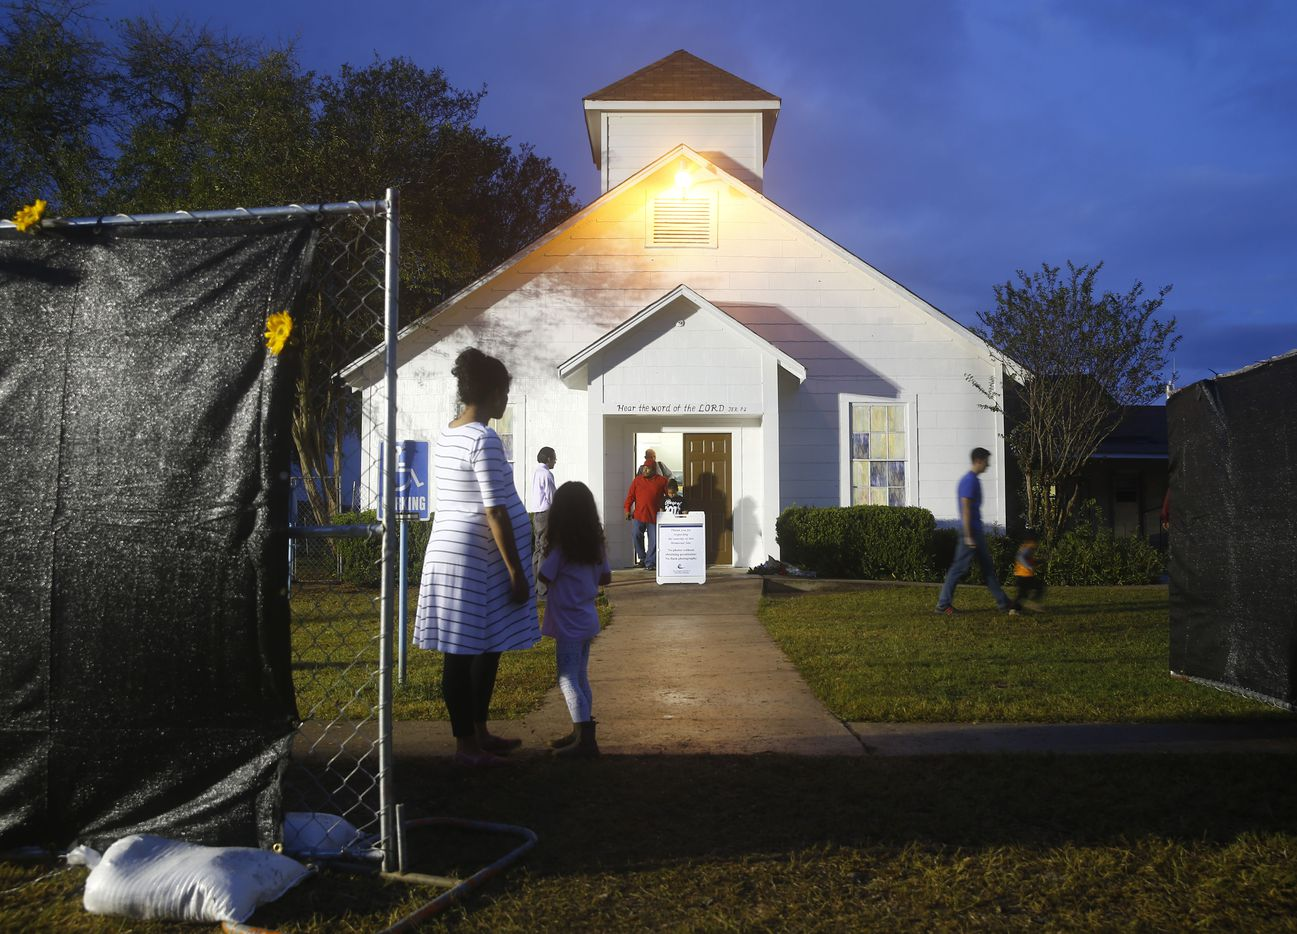 Visitors file out after they are allowed into First Baptist Church to pay their respects a week after the shooting in Sutherland Springs, Texas on Nov. 12, 2017. The church was the site of a shooting that killed 26 and left 30 injured.